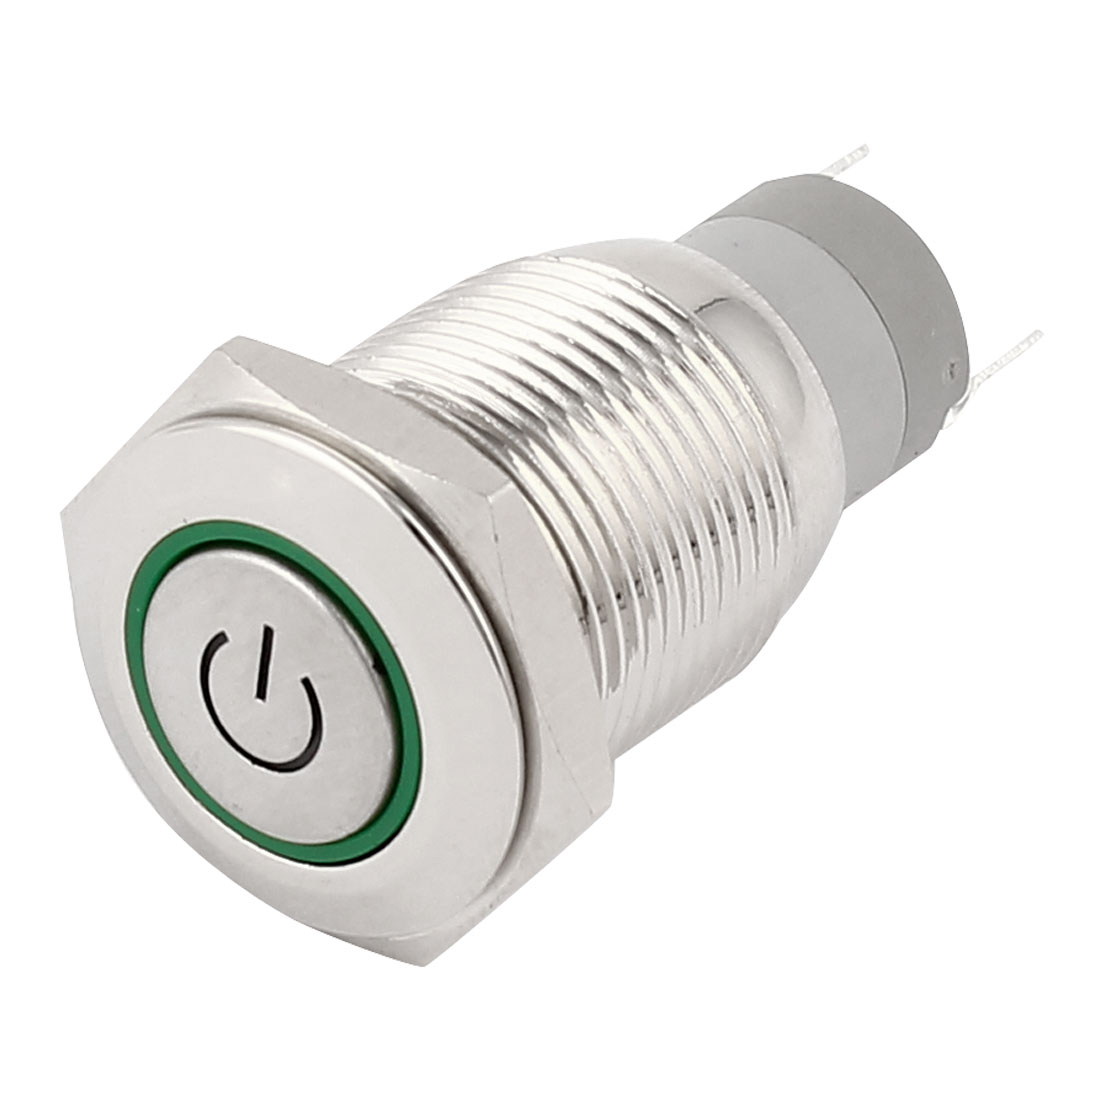 DC 12V Green Angel Eye Power Indicative LED Light SPDT 1NO 1NC 5 Pins 16mm Thread Momentary Action Metal Push Button Switch